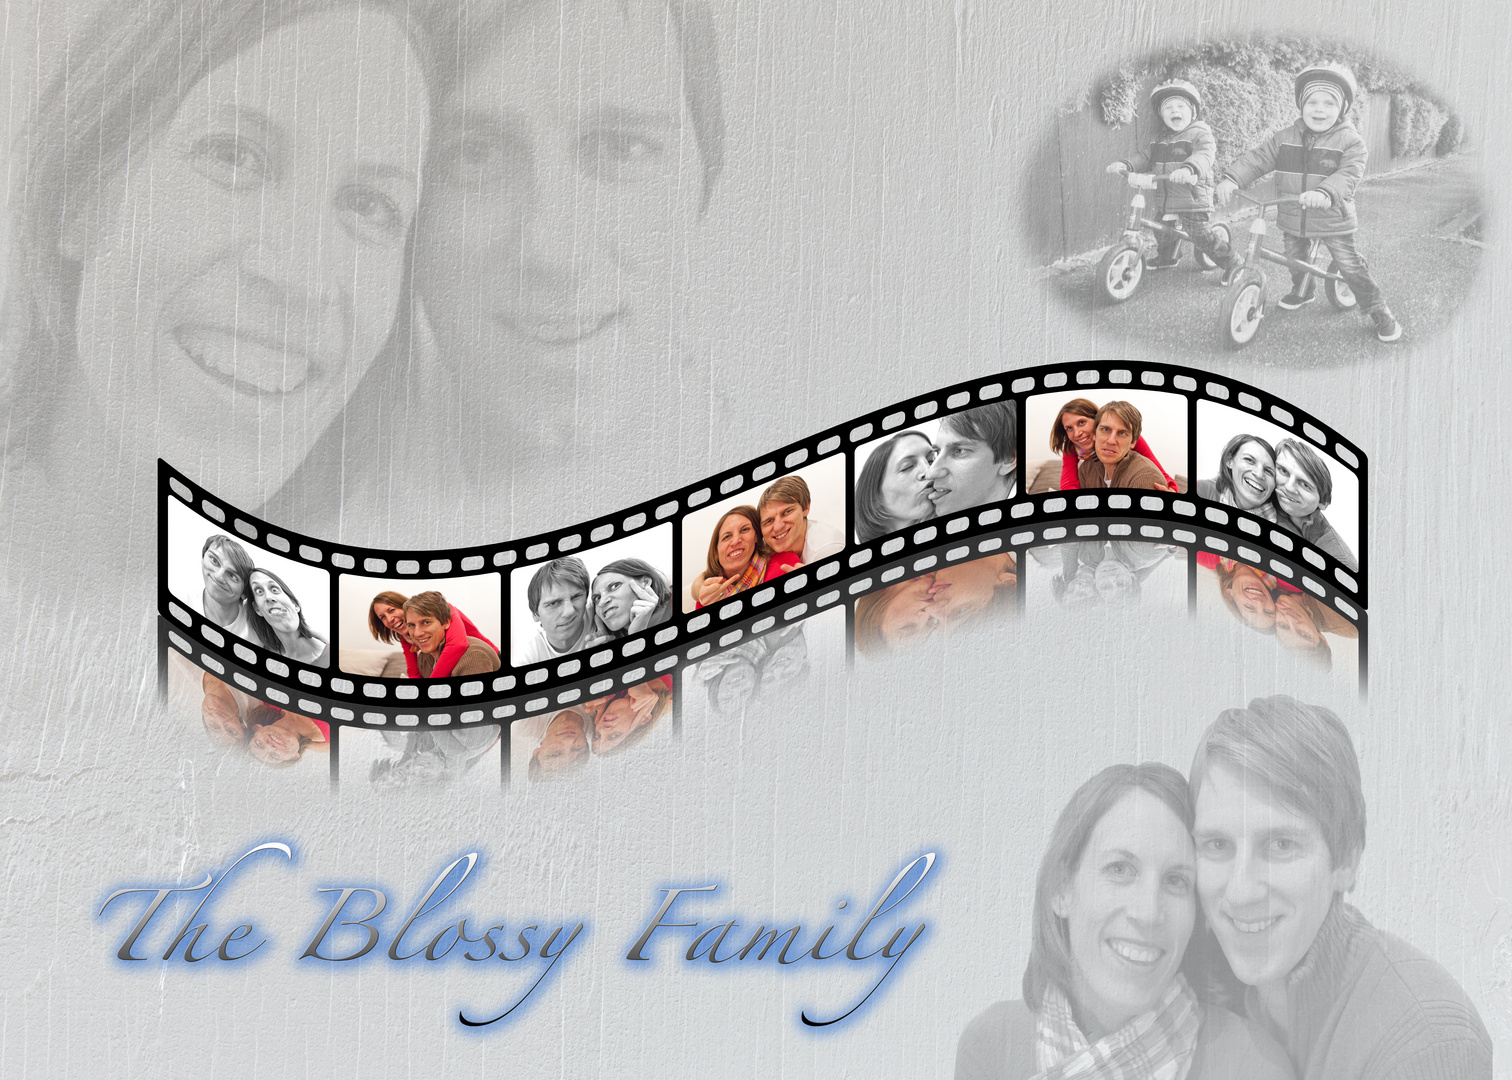 The Blossy Family